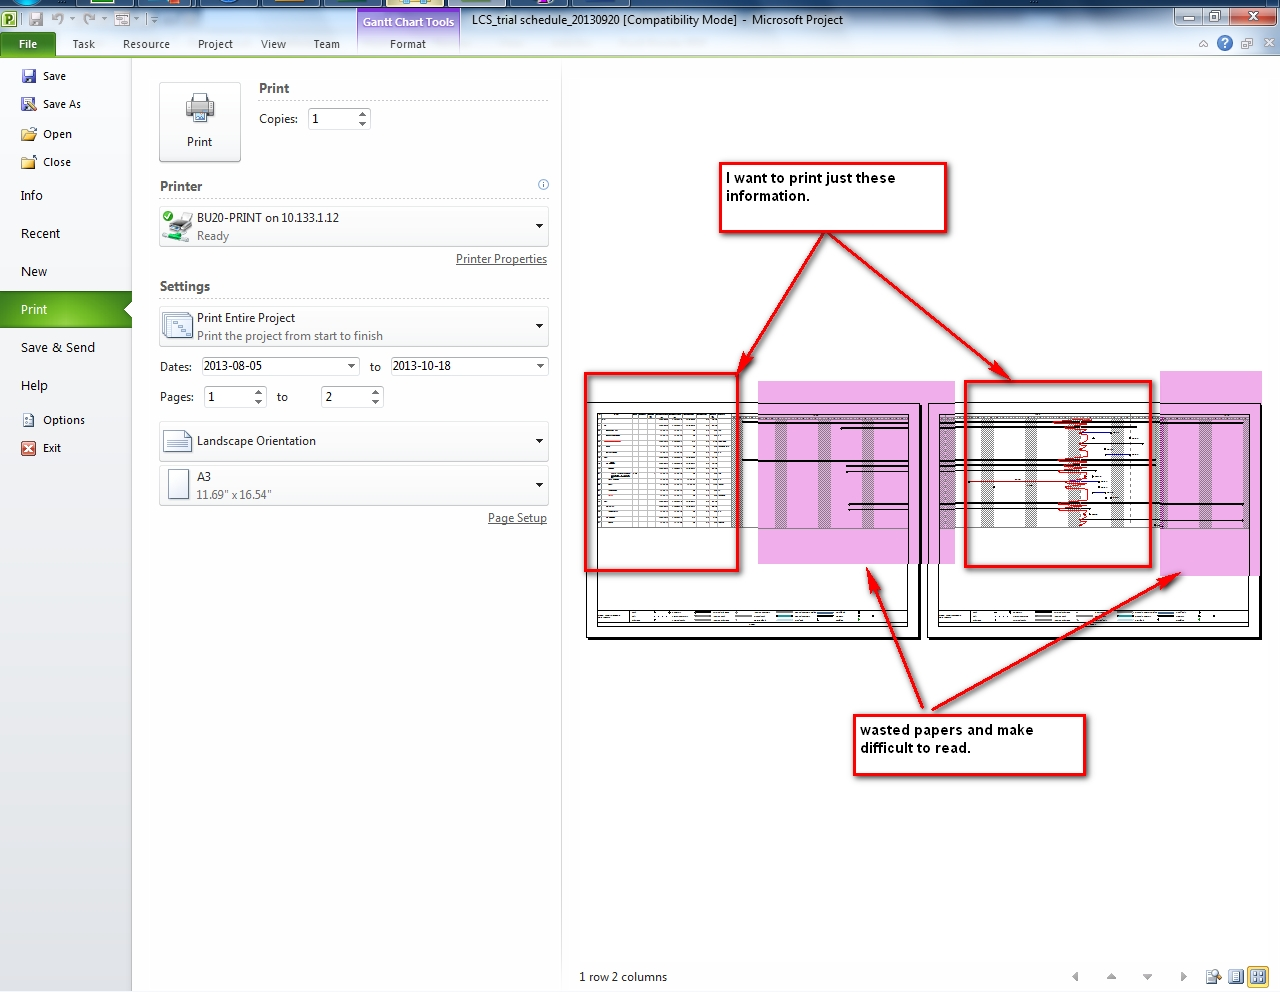 Ms Project - How To Print Task List & Gantt Chart From A Specific